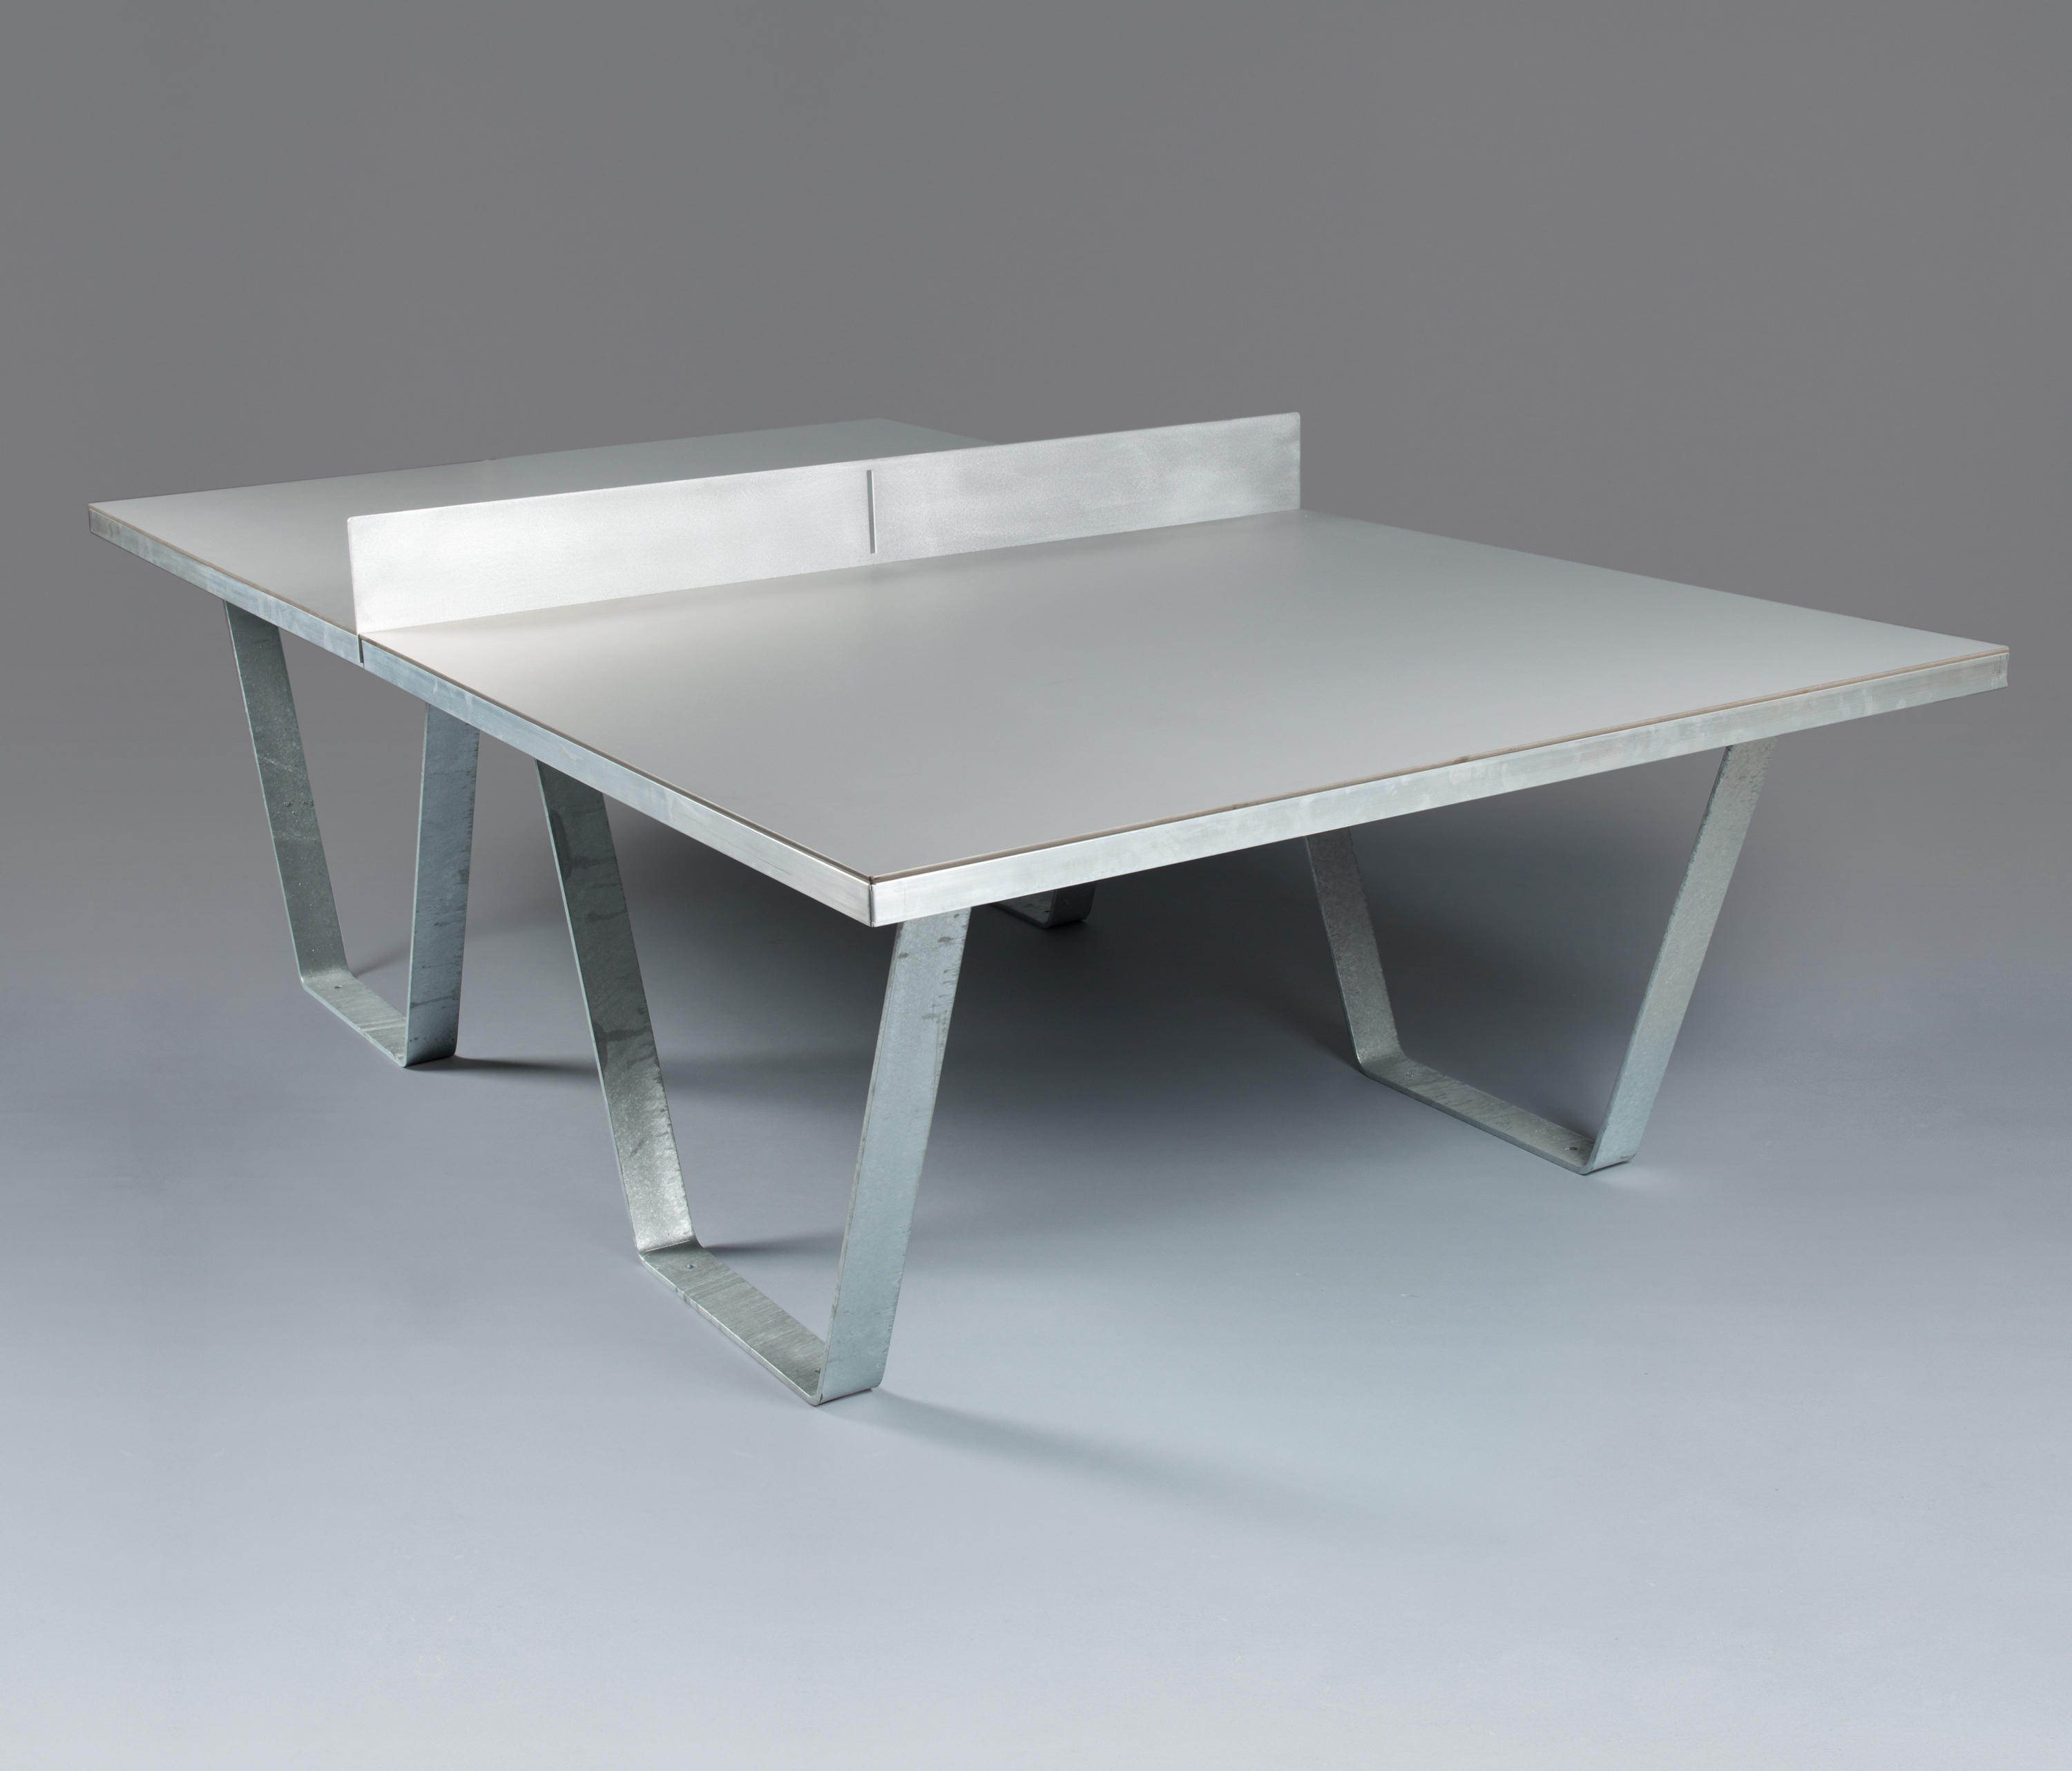 Oxygene Ping Pong Table By AREA | Dining Tables ...